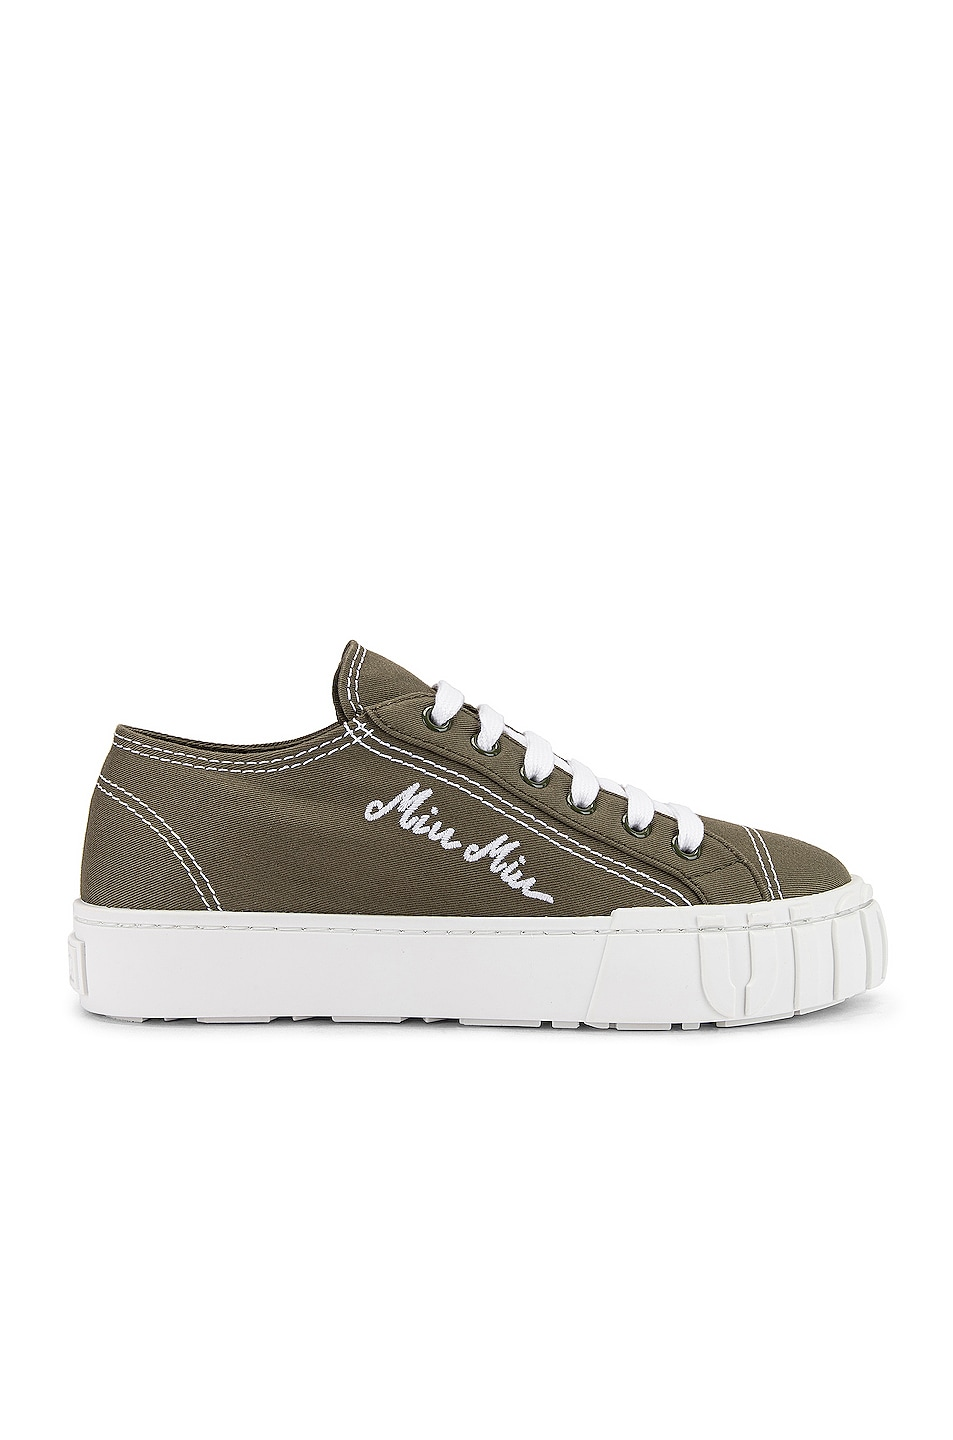 Image 1 of Miu Miu Low Top Sneakers in Military & White